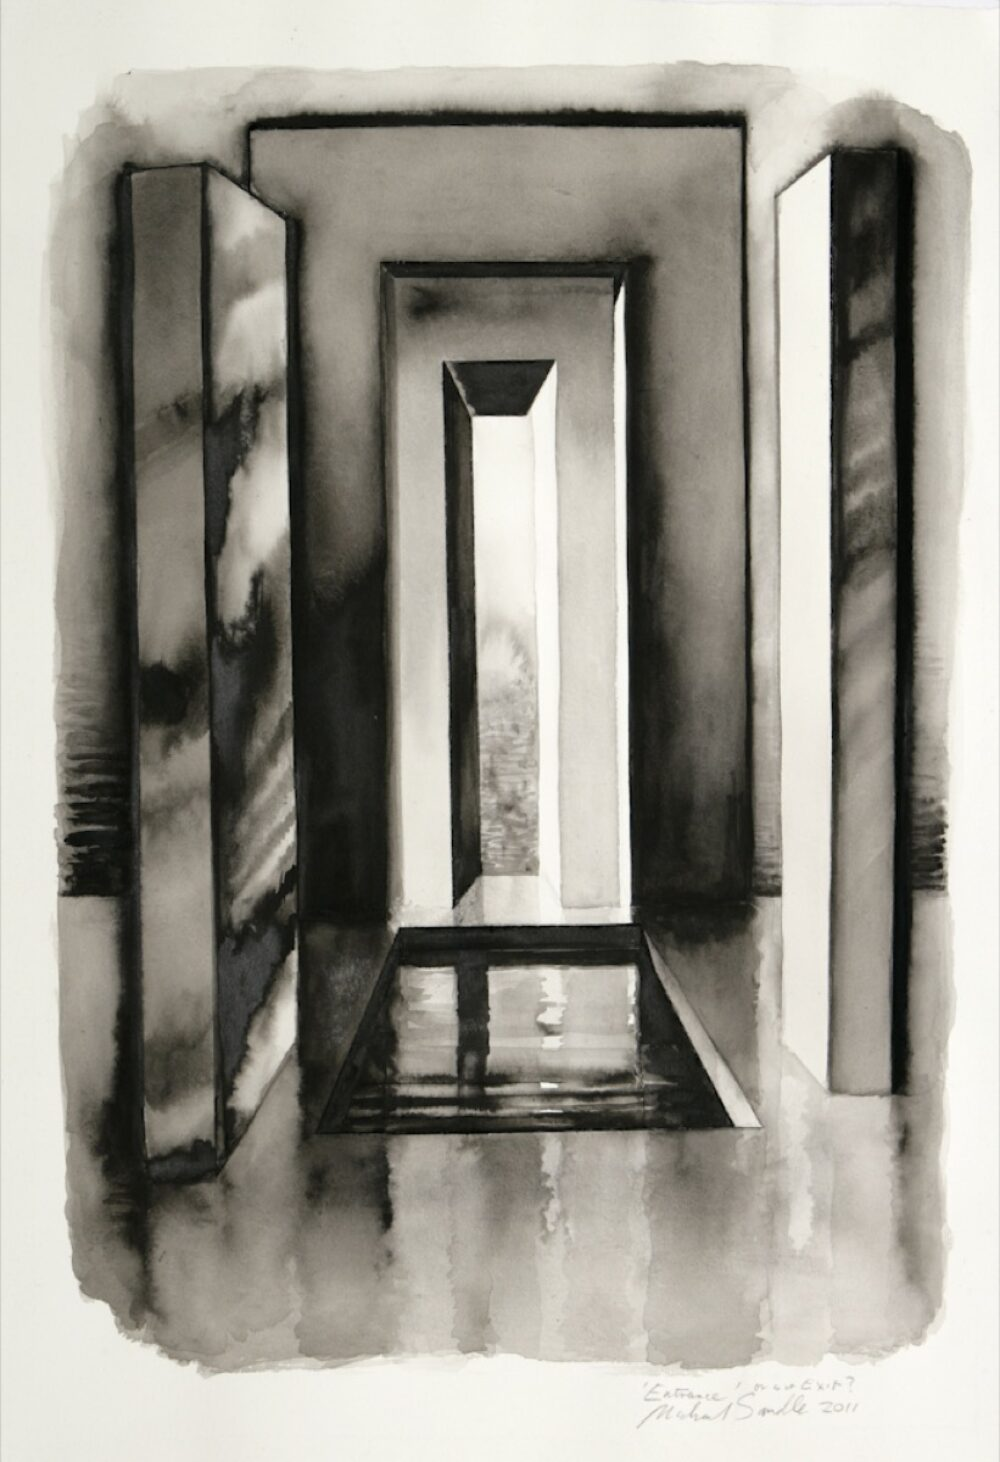 Michael Sandle - Works on Paper